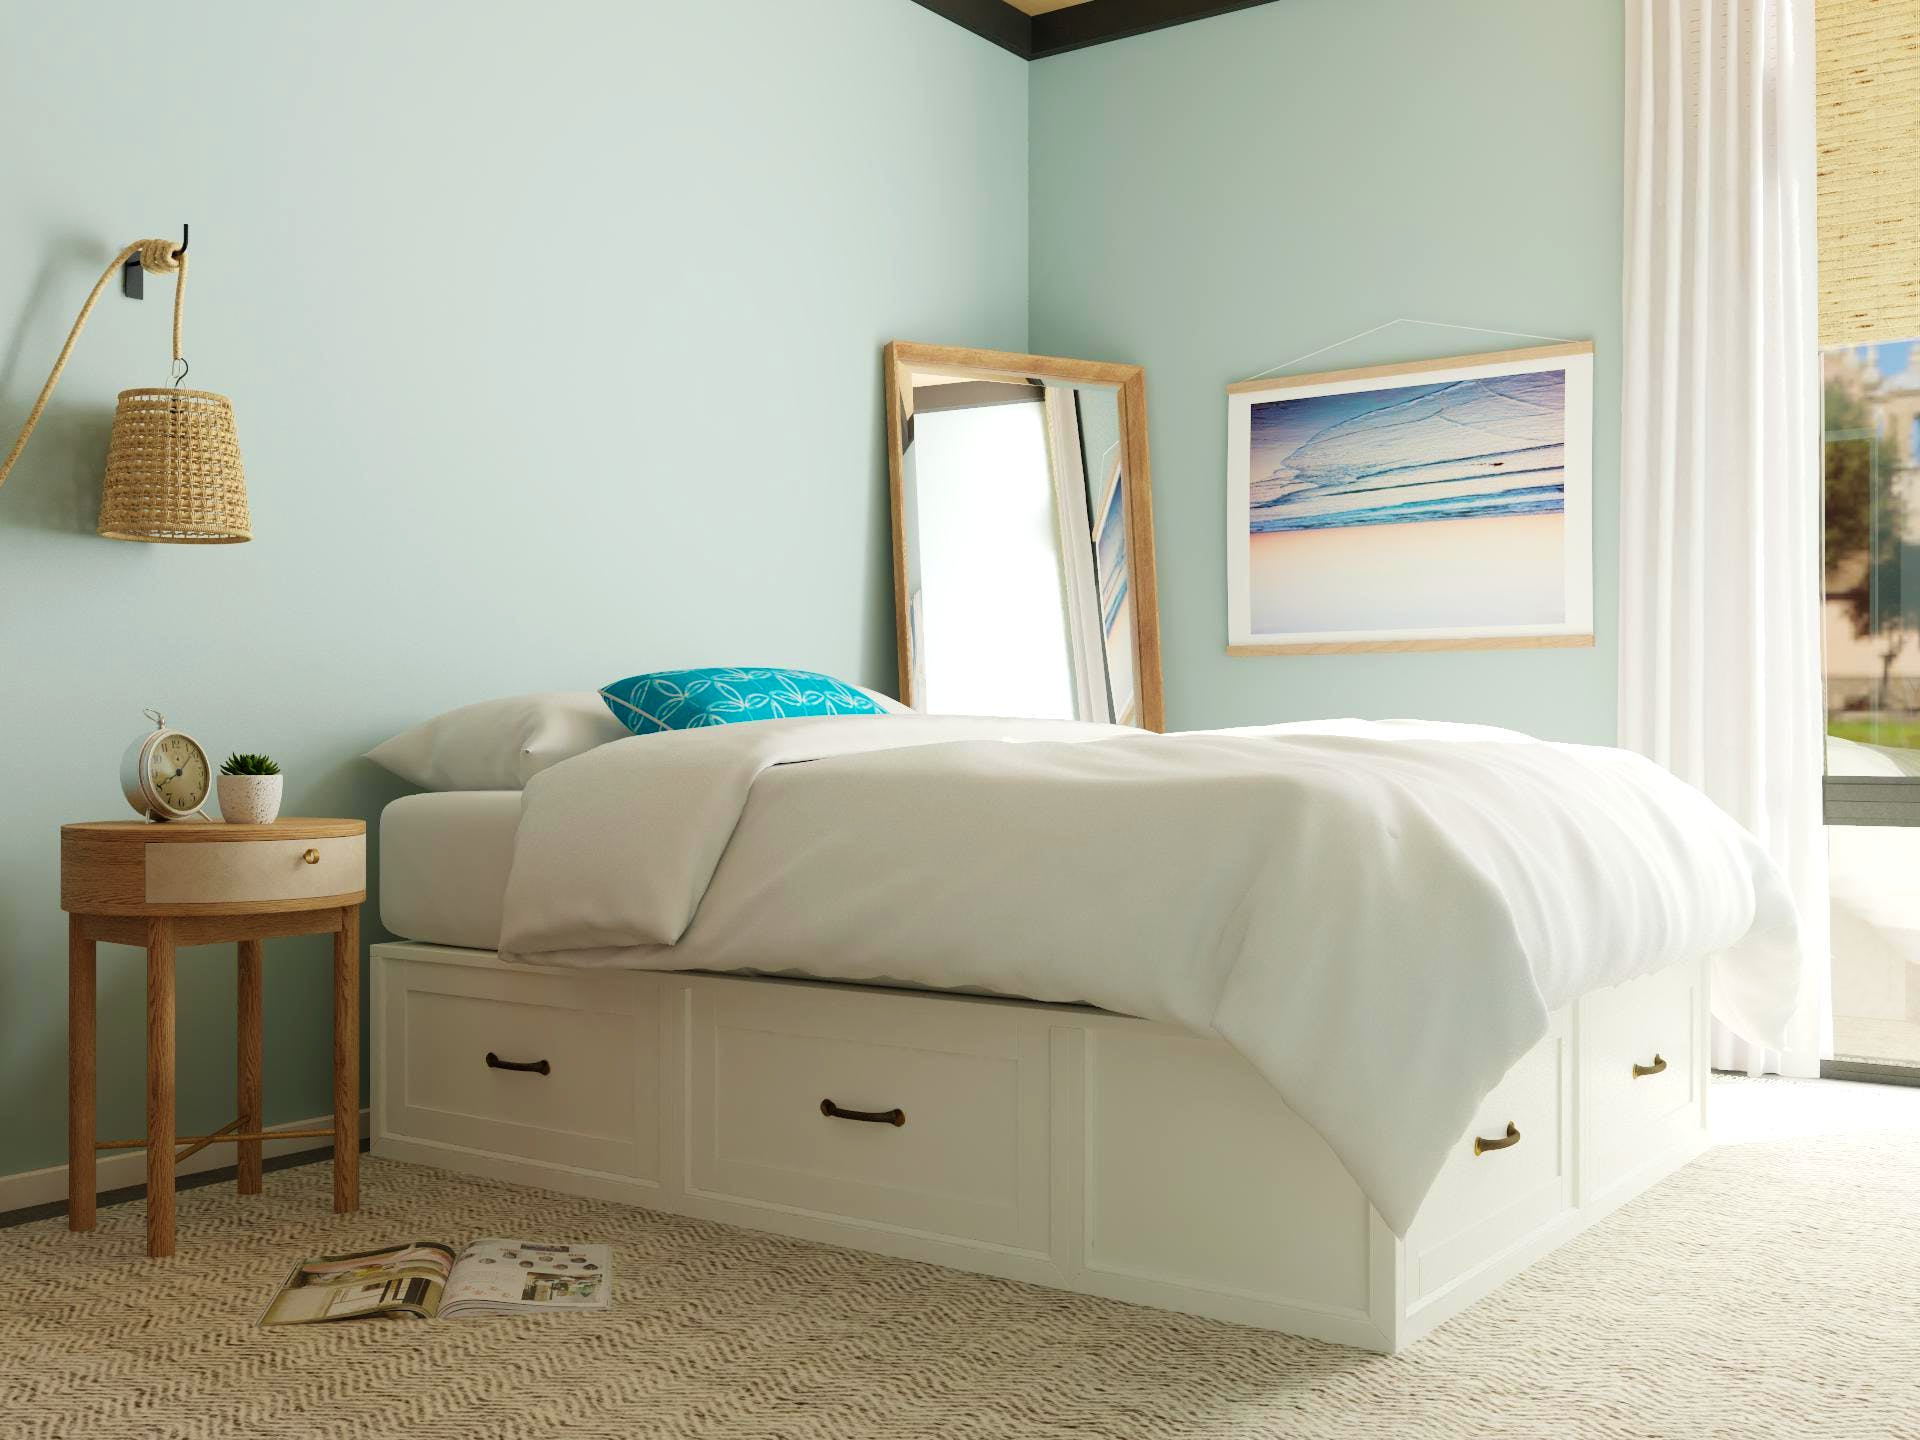 Mid-Century-Modern Bedroom in Blue with Storage Bed